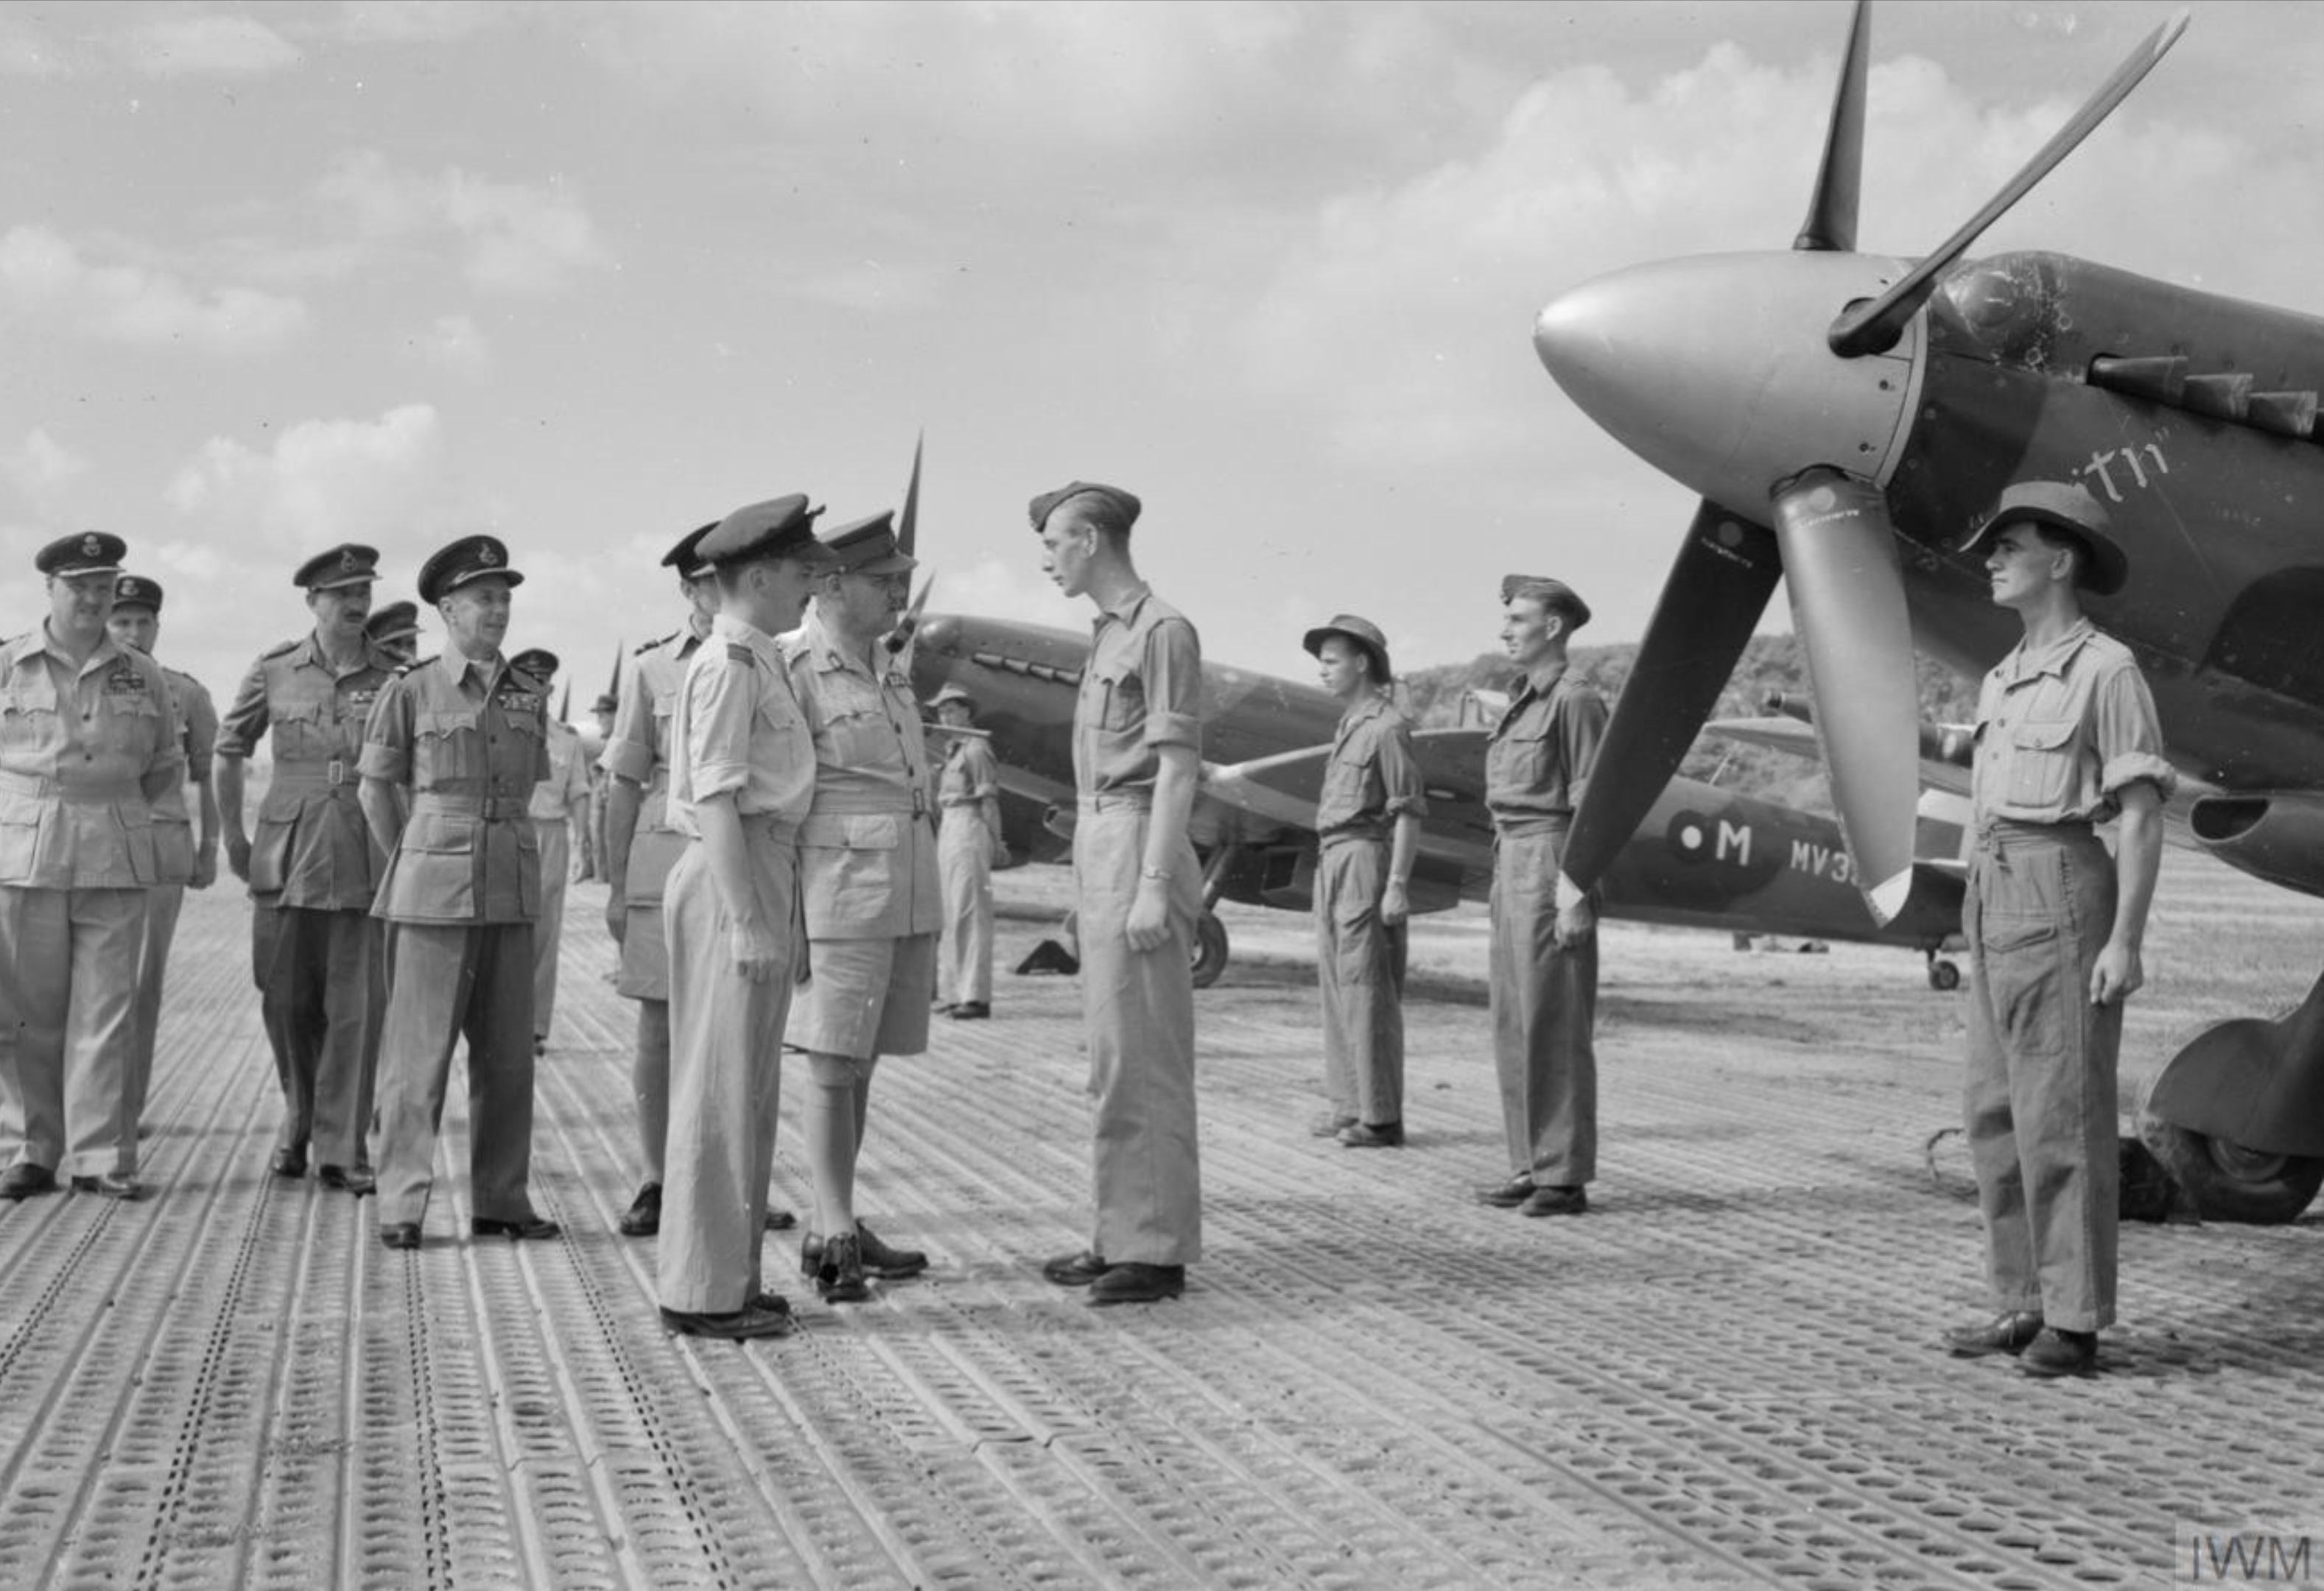 Aircrew RAF at Kuala Lumpur selected to form part of occupation in Japan IWM CF1123